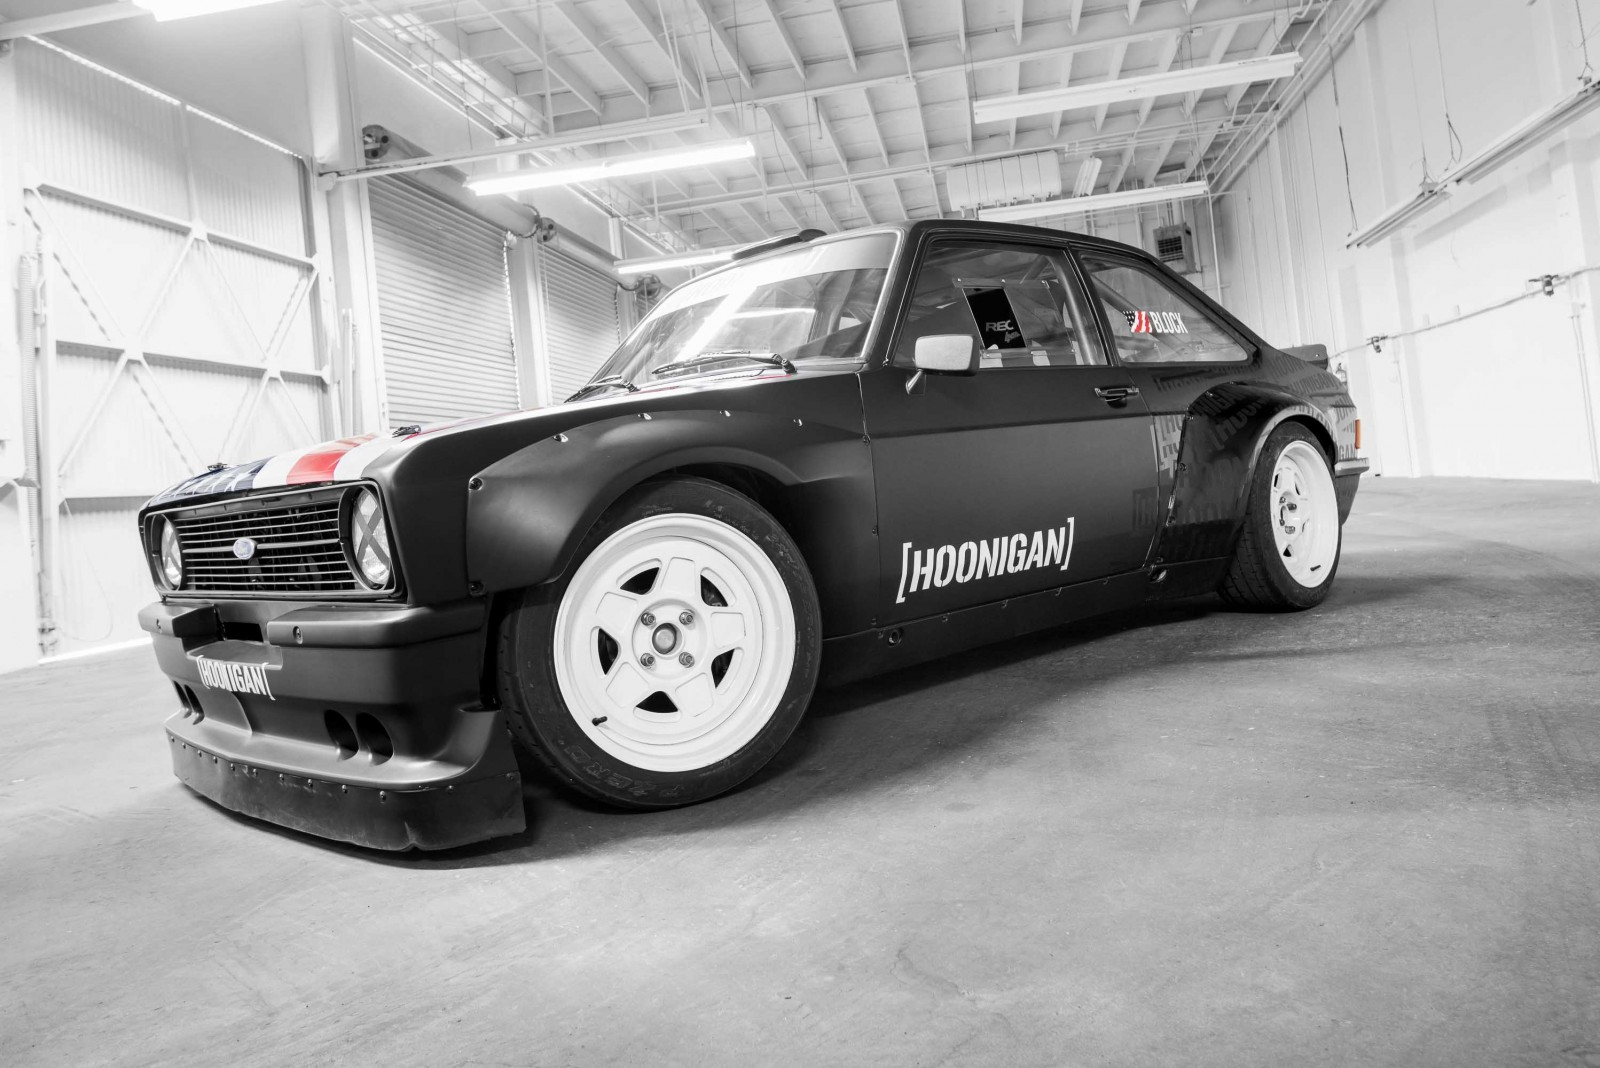 Hoonigan Escort >> Hoonigan Again: Ken Block Set to Unleash Gymkhana Escort - OnAllCylinders